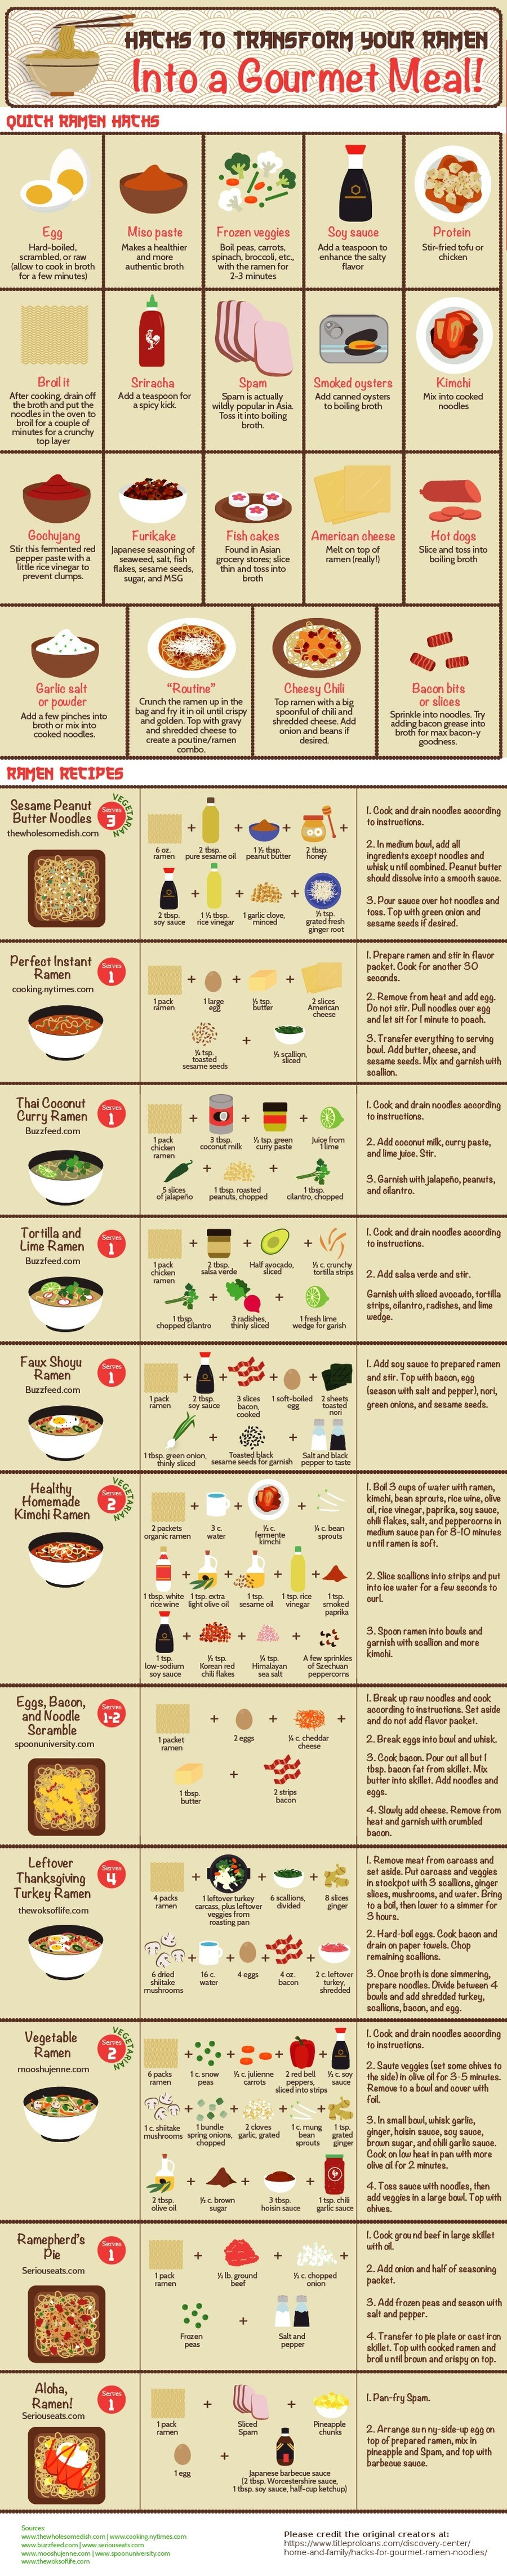 Hacks to turn your Ramen into a gourmet meal. .. I miss eating instant ramen. I can't eat it anymore. Too much sodium, and I've got the high blood pressure.